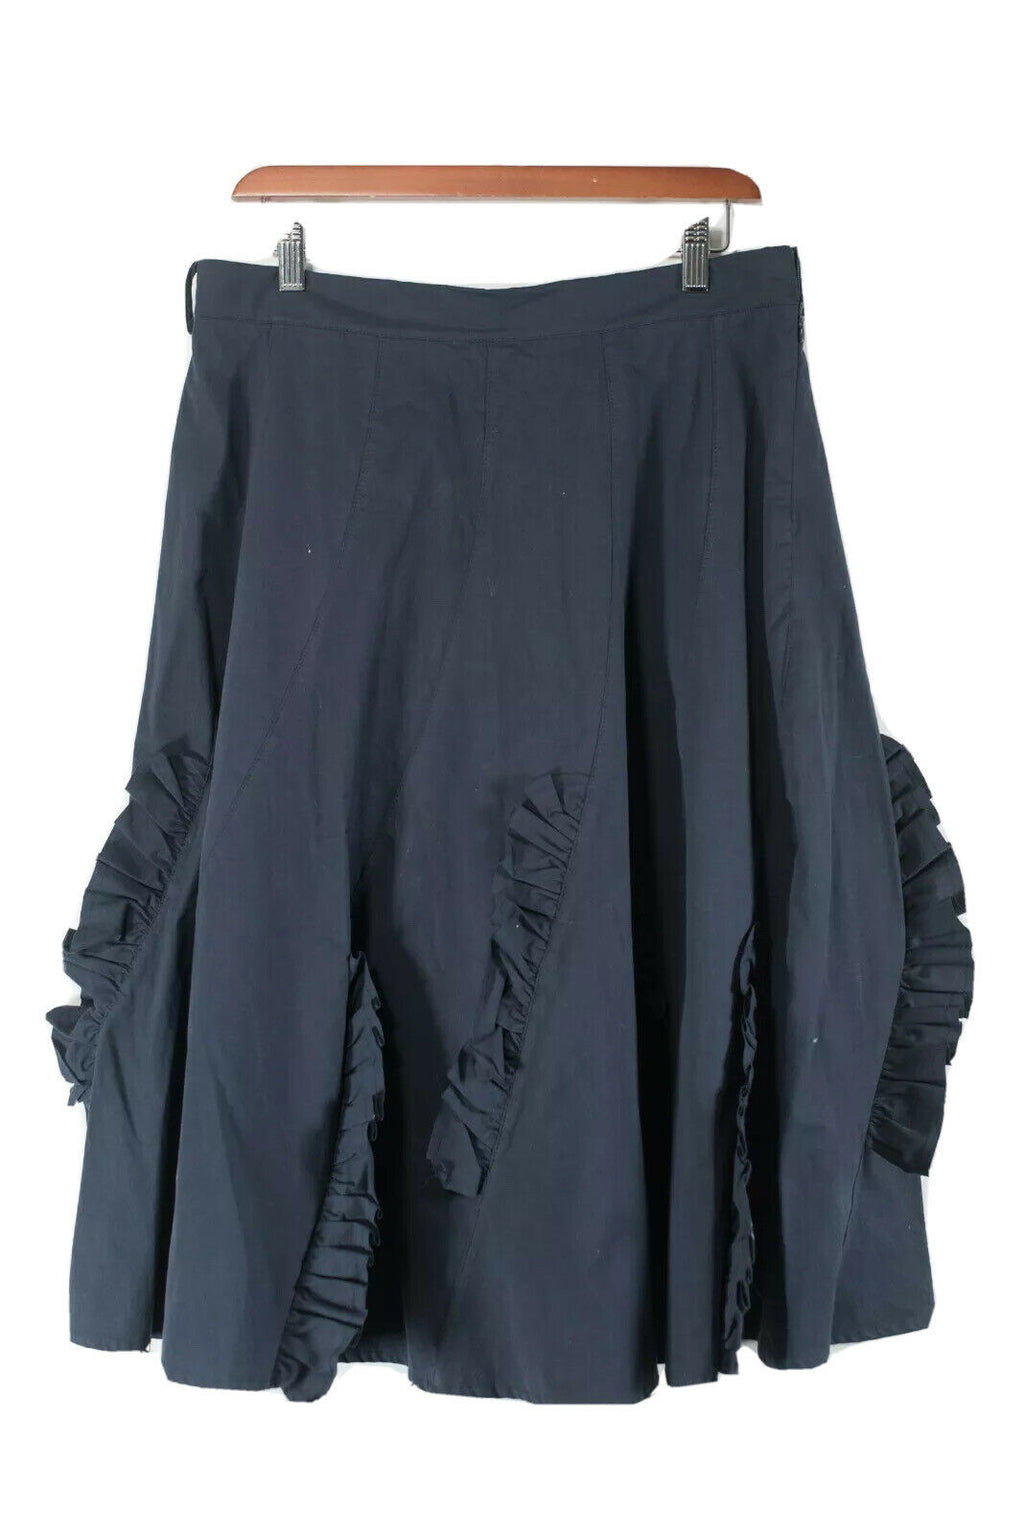 Background Womens Medium Navy Blue Skirt NWT